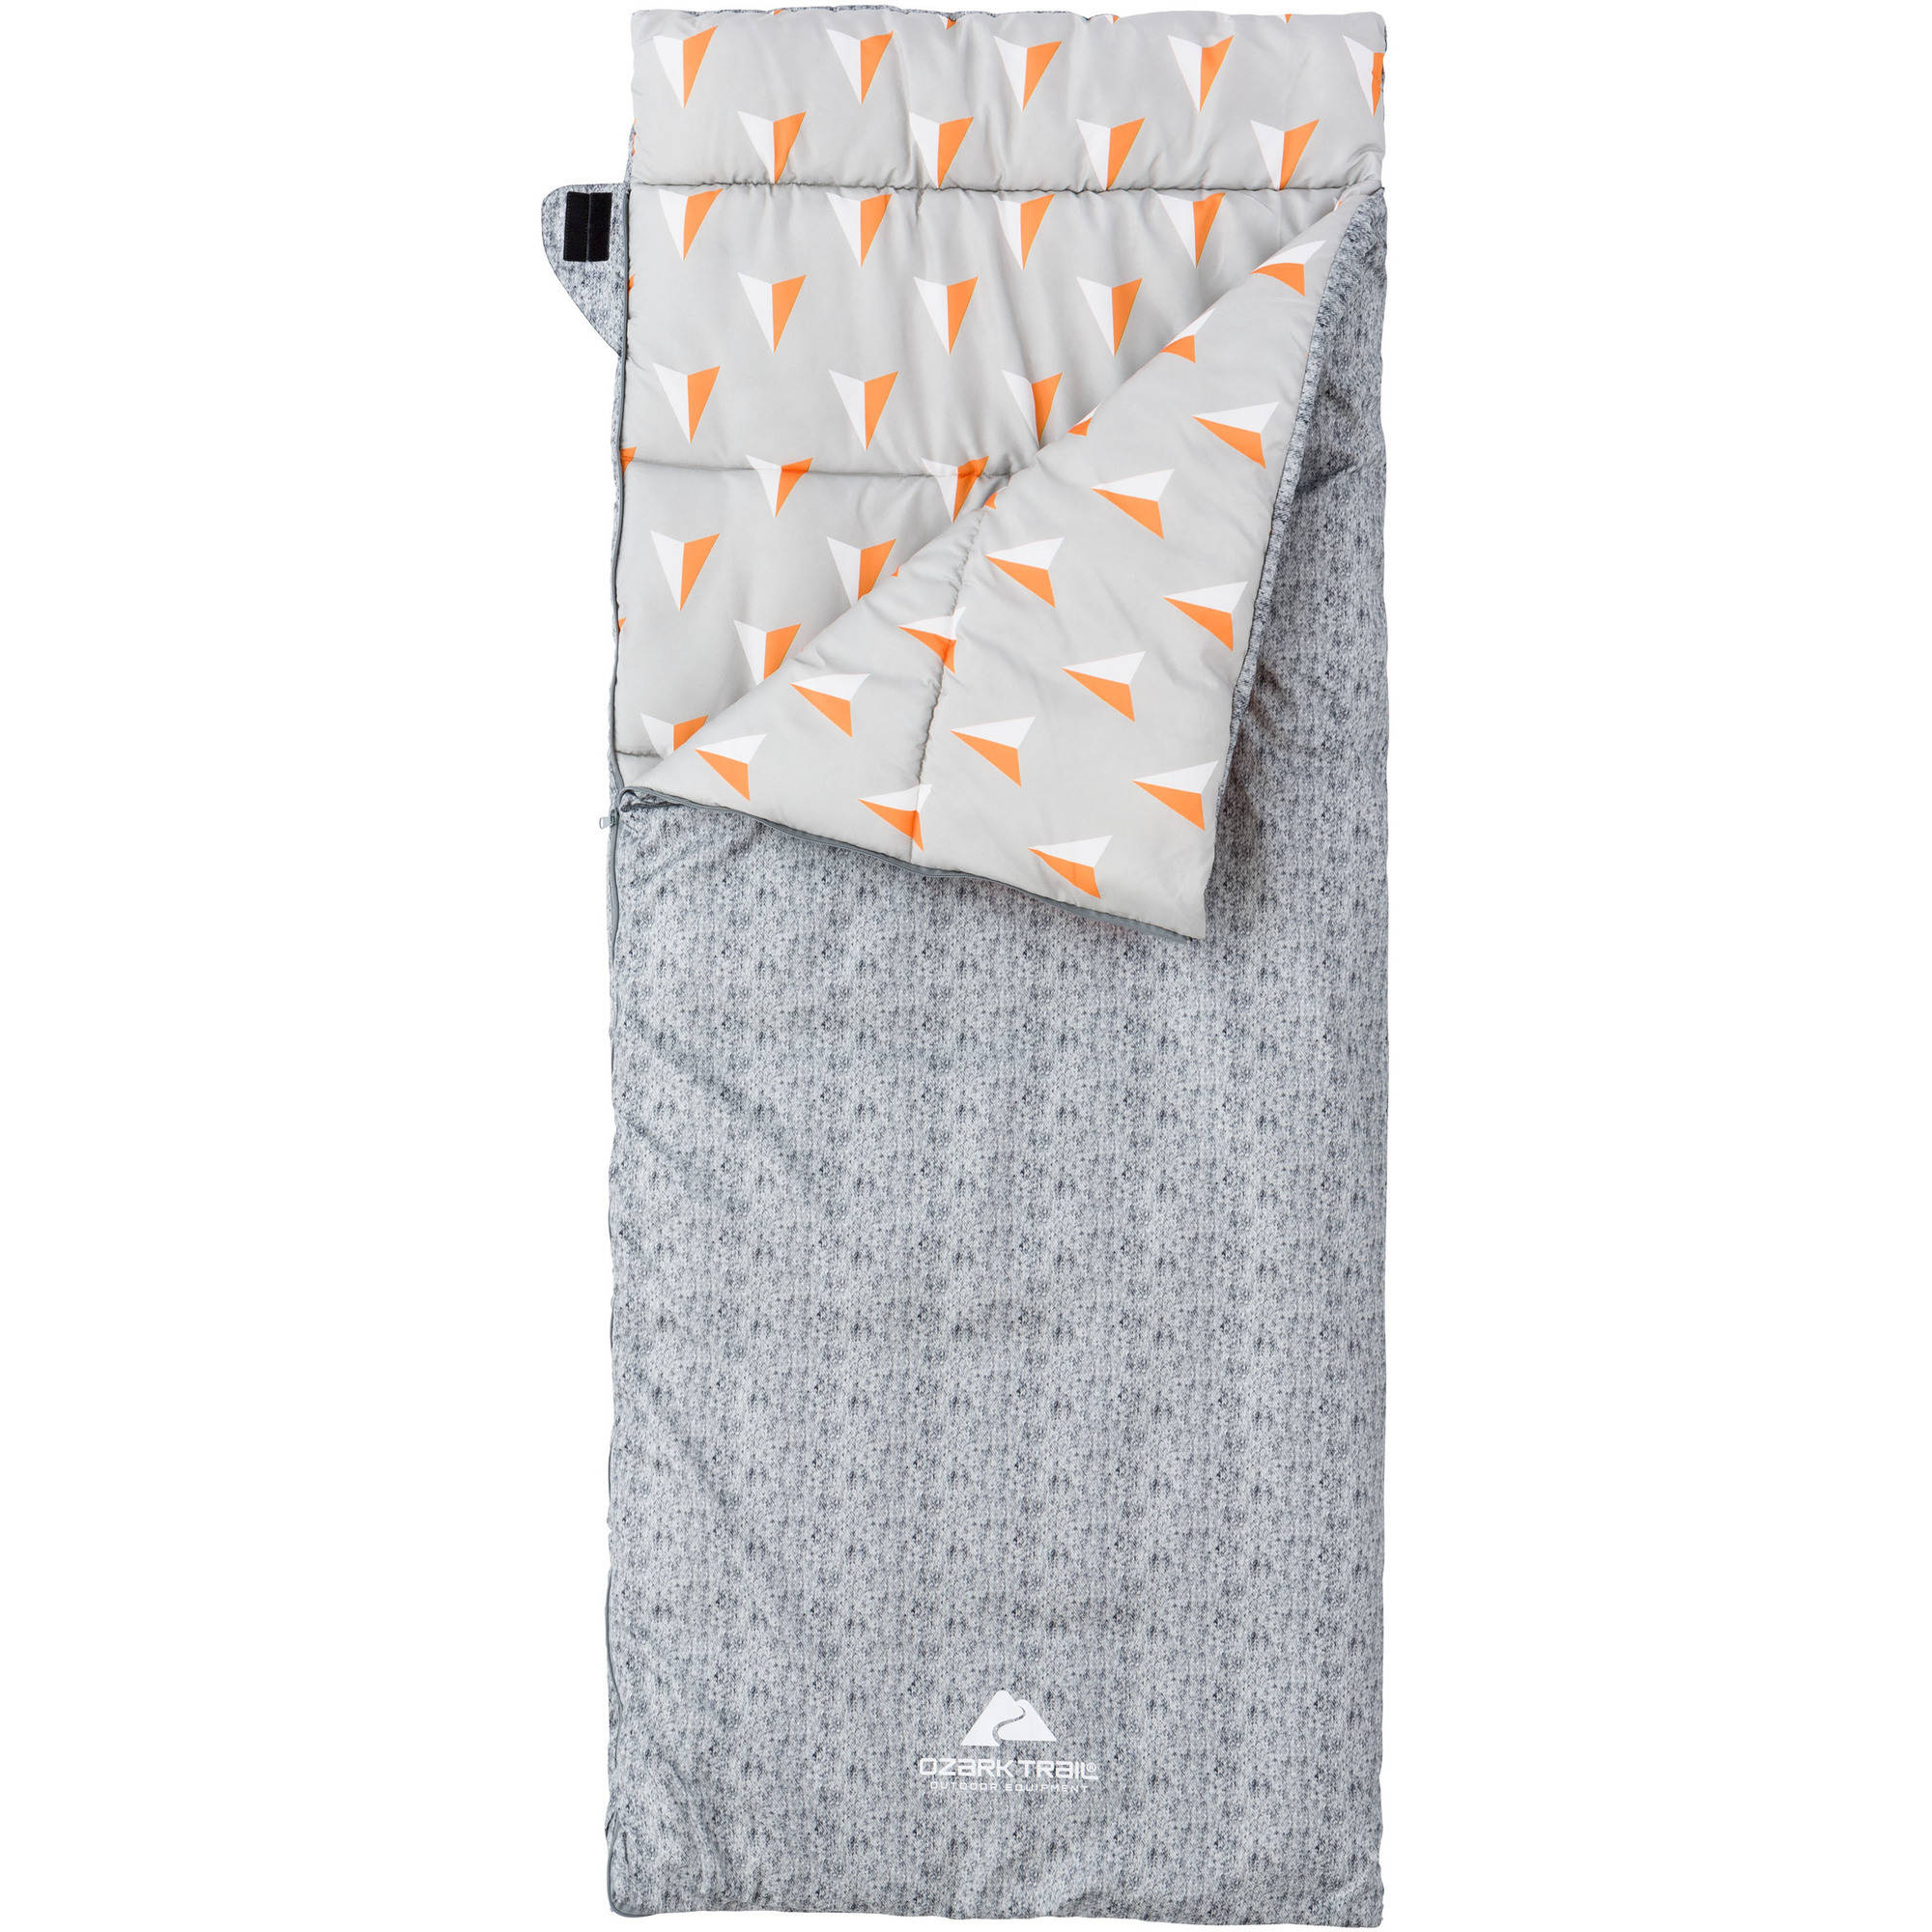 Ozark Trail Deluxe 50-Degree Warm Weather Youth Sleeping Bag, Gray and Orange